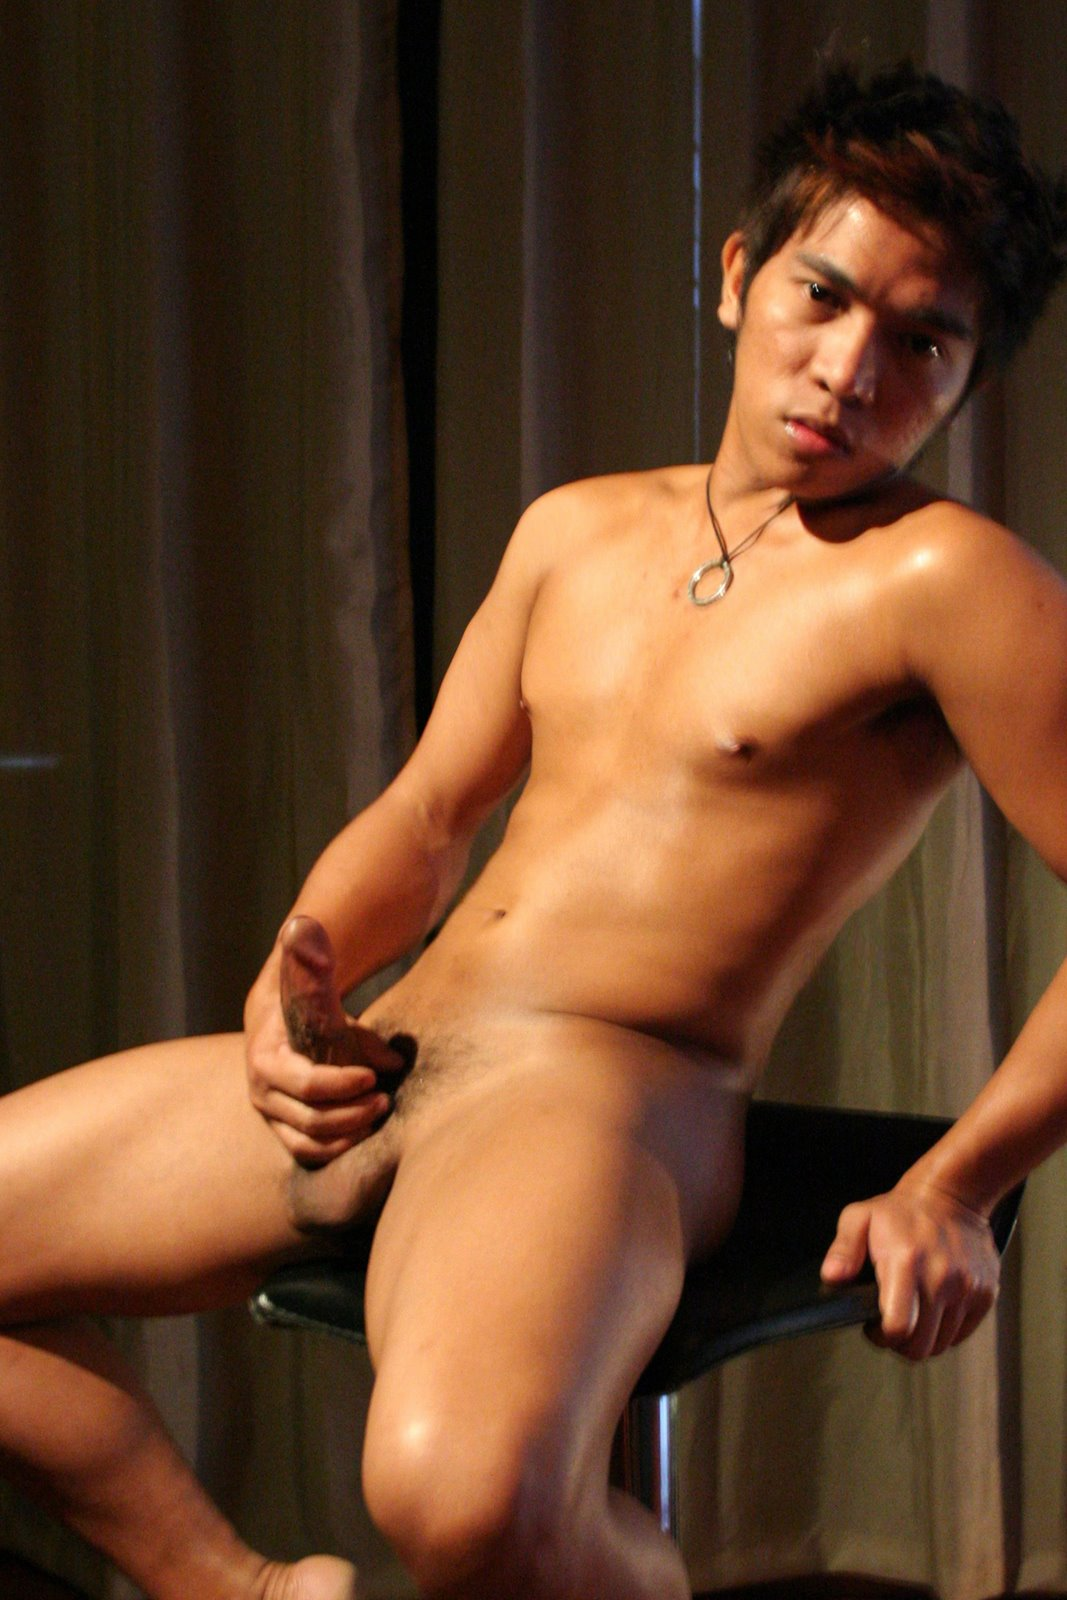 Nude pinoy male amateur